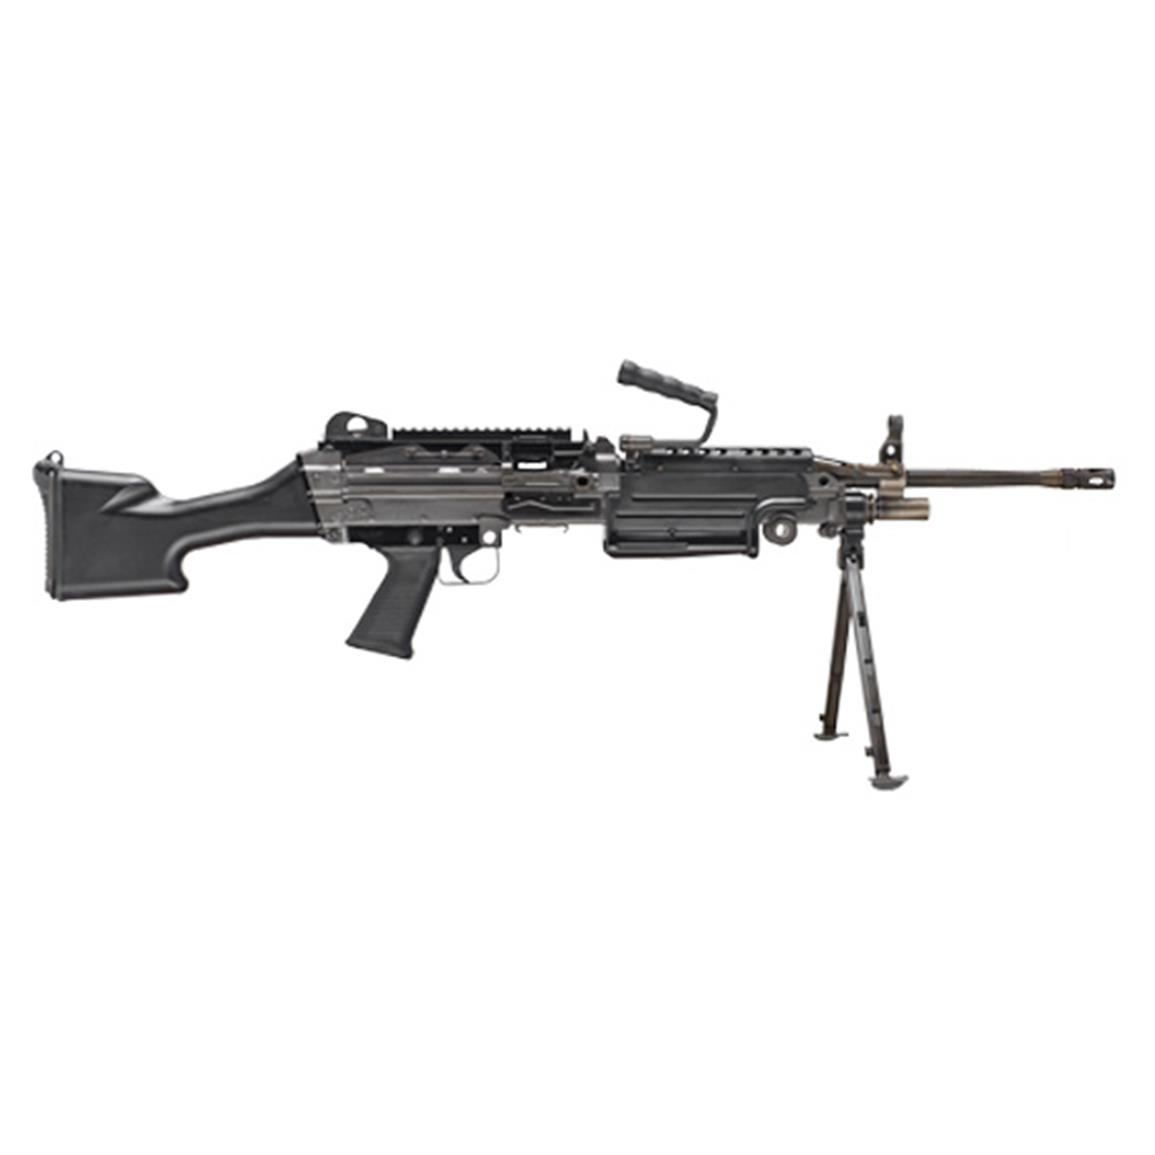 "FN M249S, Semi-Automatic, 5.56x45mm, 20.5"" Barrel, 30 Rounds"